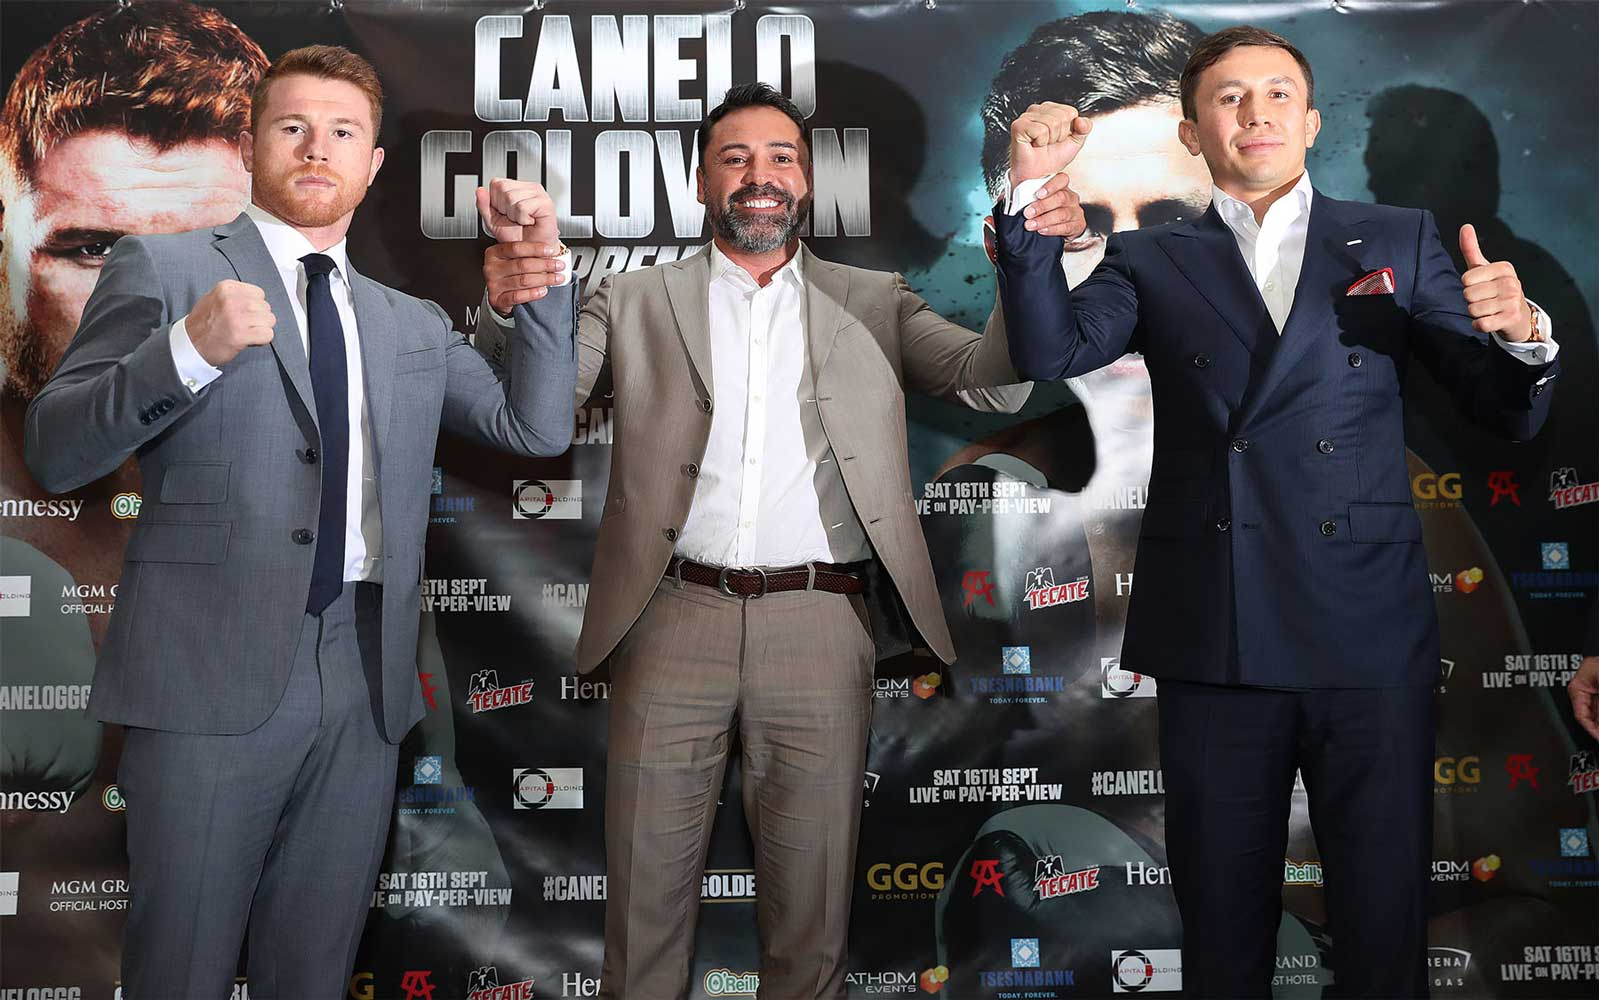 Canelo vs. GGG Supremacy